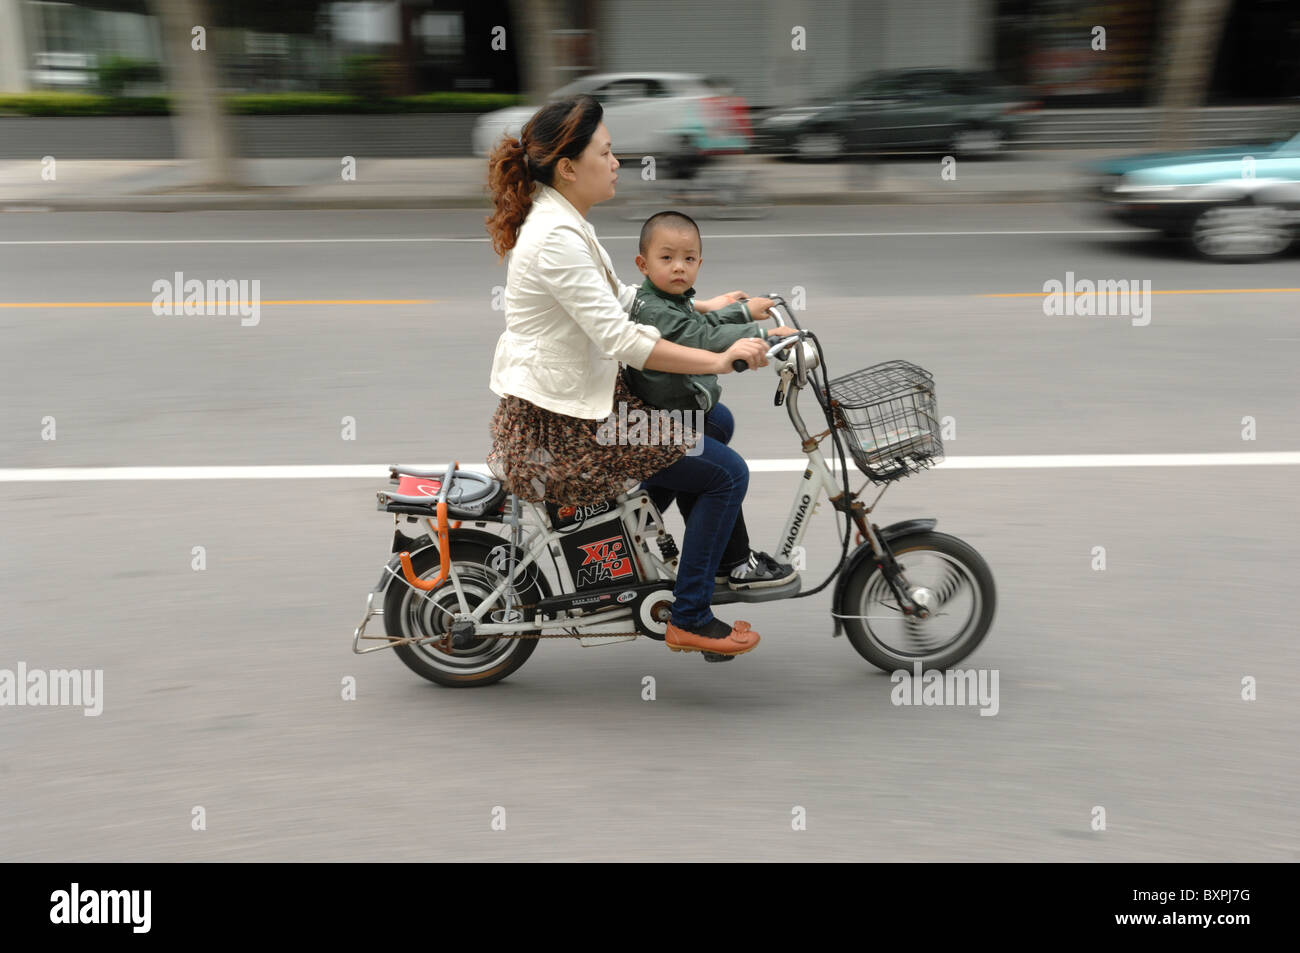 A woman and young child riding an electric scooter along a road in Yangzhou Jiangsu Province of China - Stock Image